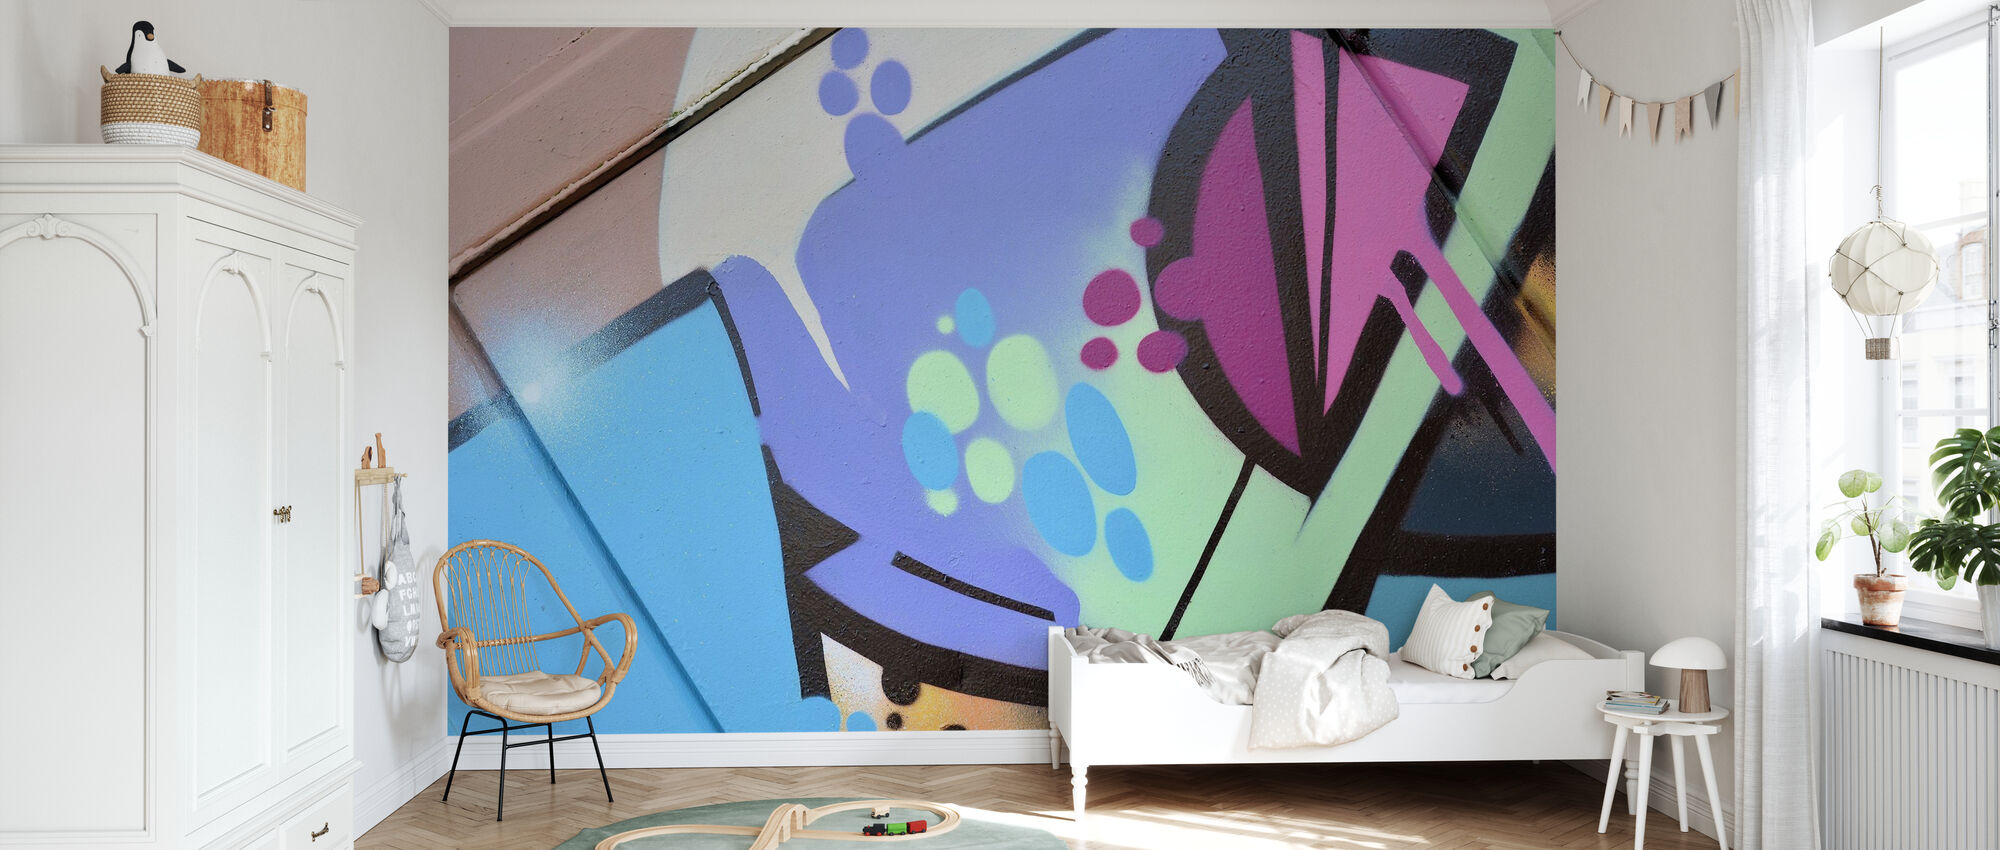 Pastel Graffiti - Wallpaper - Kids Room